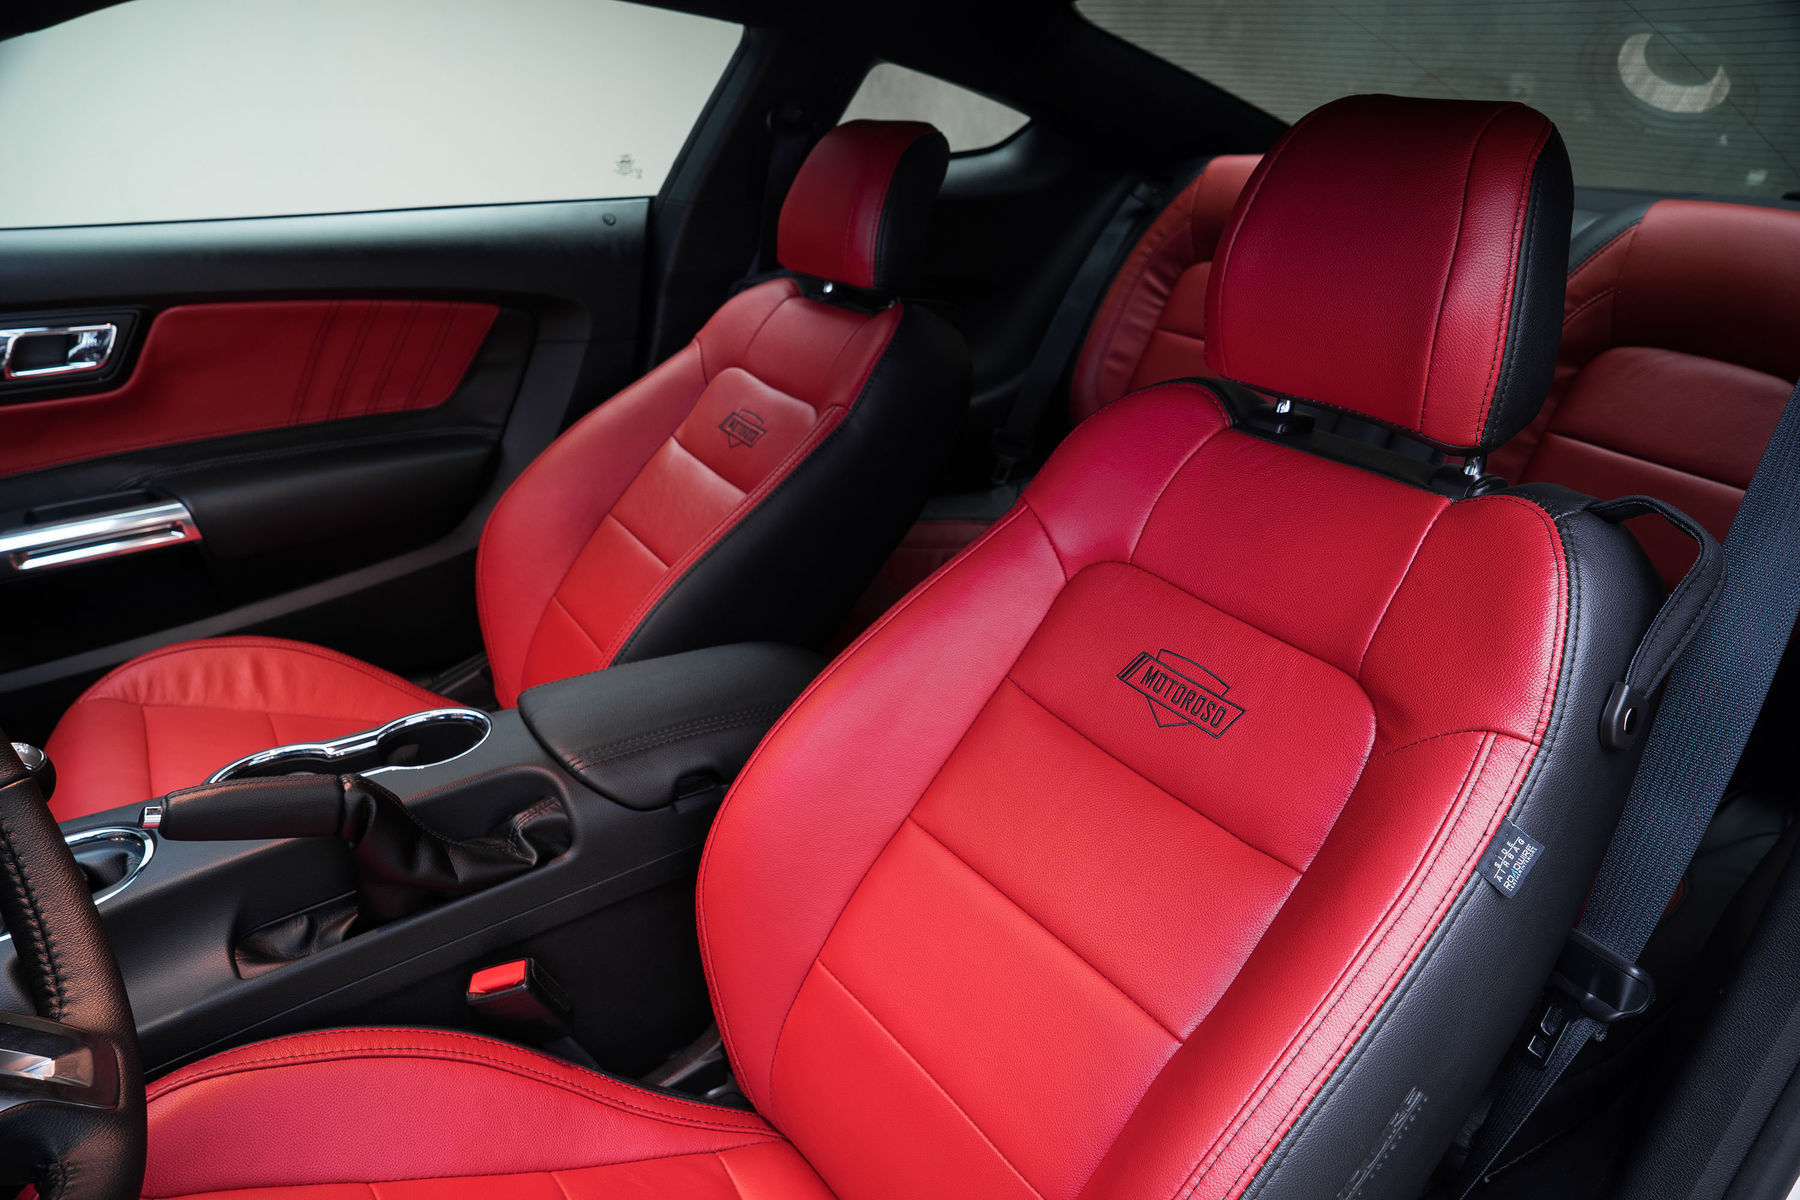 Fabulous 2015 Motoroso Ford Mustang Seat Detail Andrewgaddart Wooden Chair Designs For Living Room Andrewgaddartcom